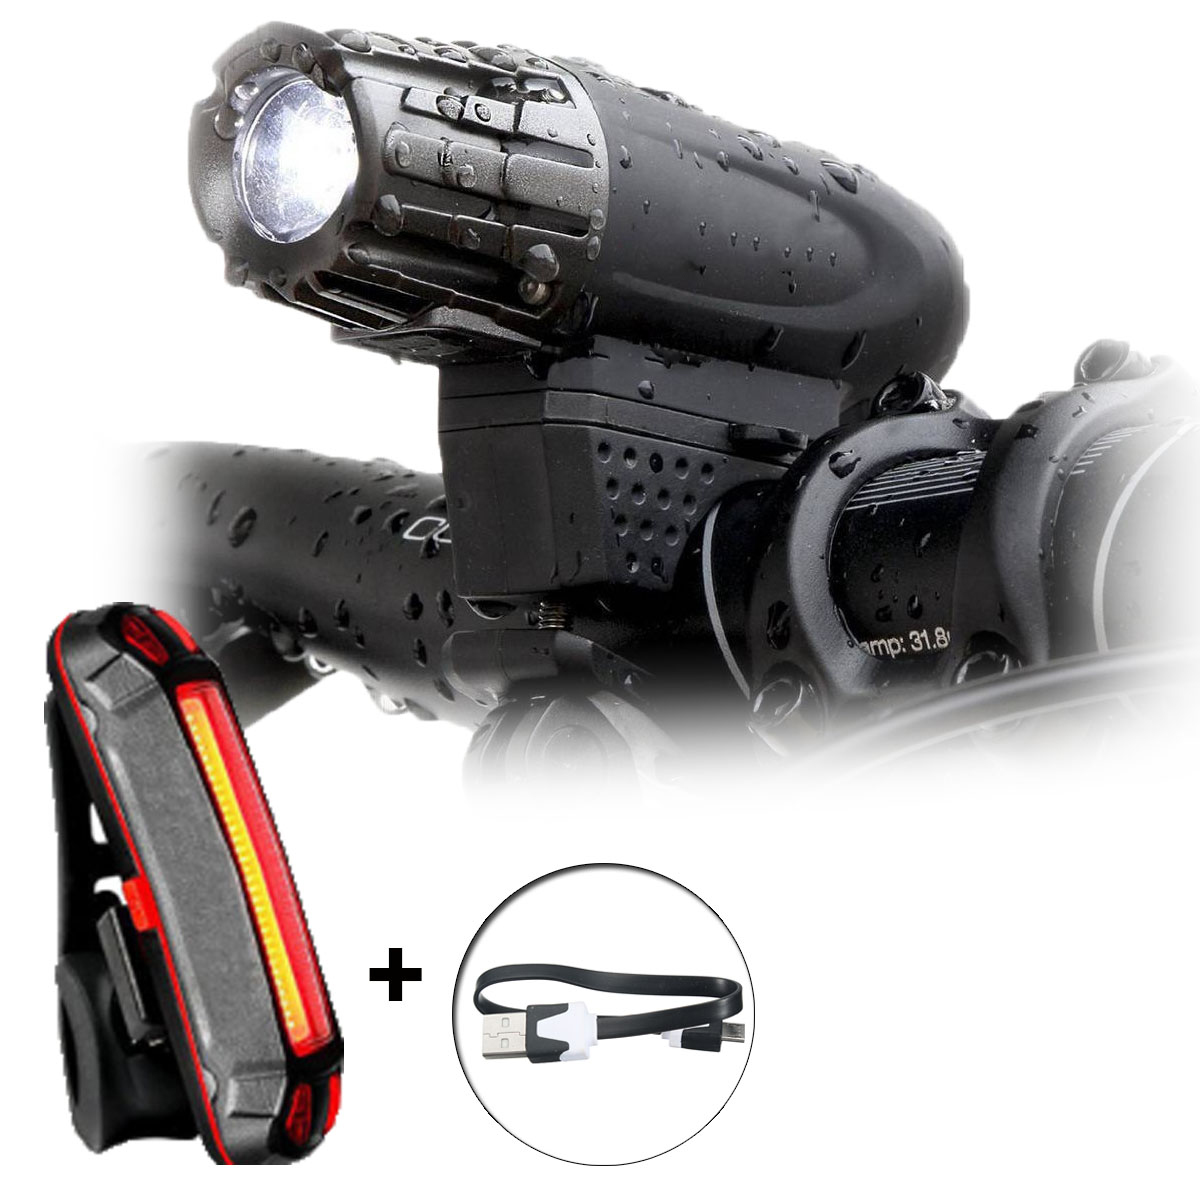 BIKIGHT Waterproof USB Rechargeable Bike Front Light Taillight Set